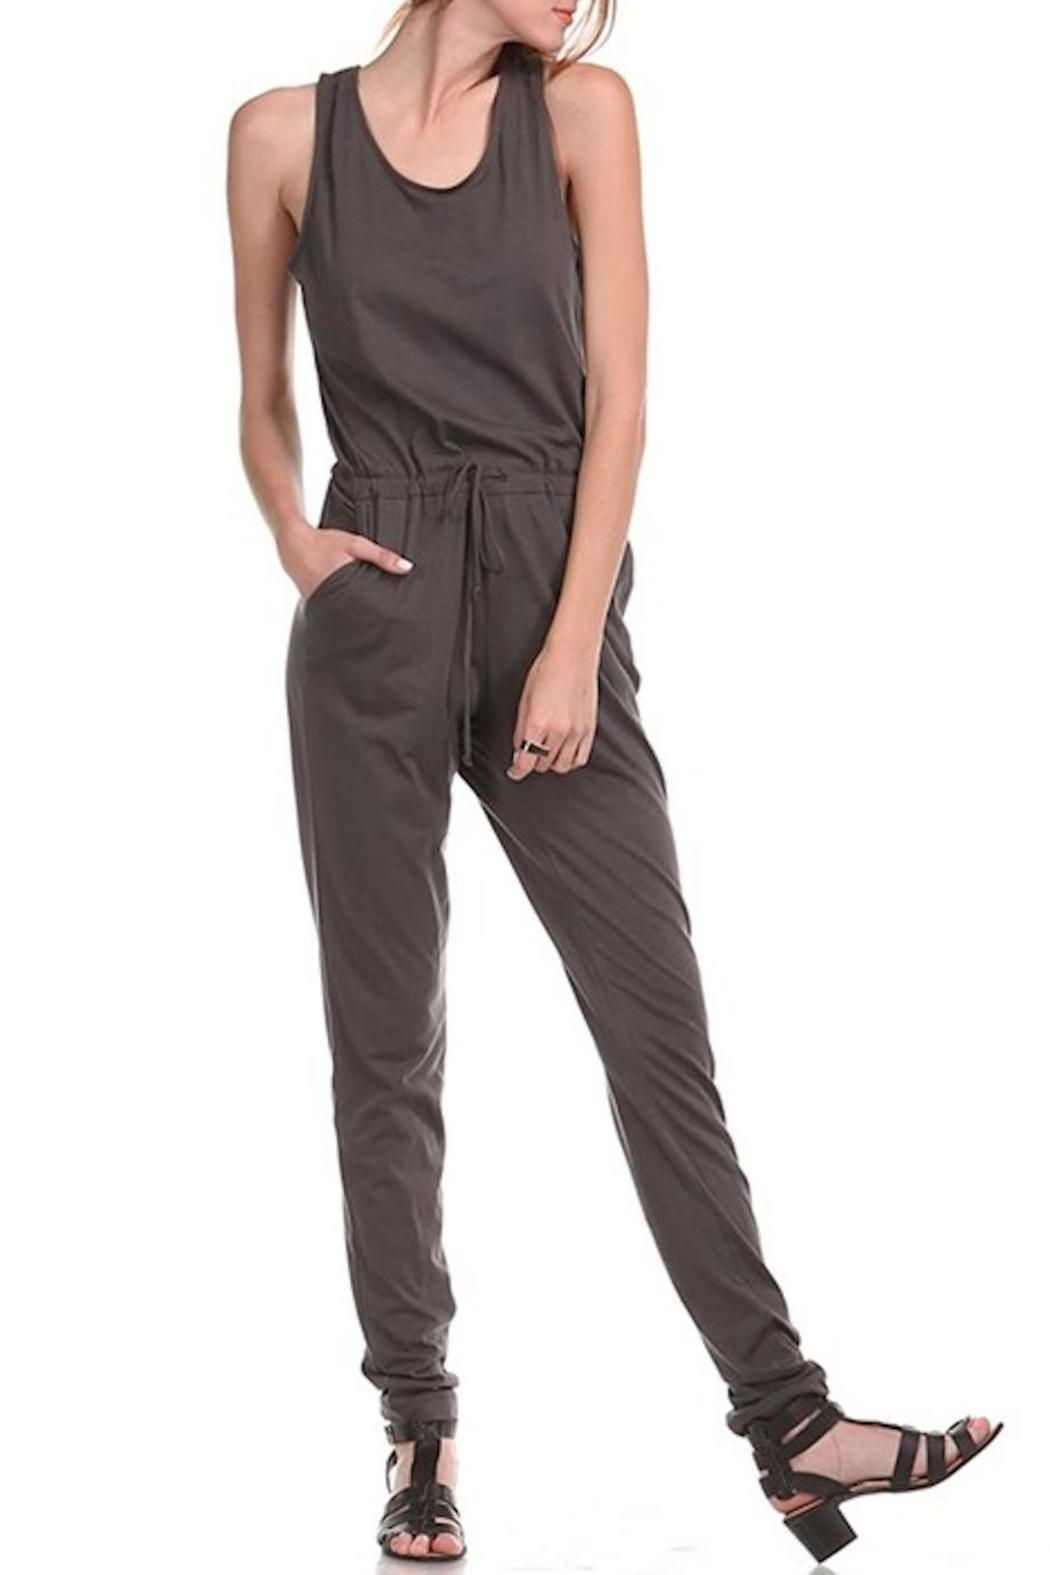 "Charcoal jumpsuit with drawstring waist and pockets. The open back has strings that tie the top together at the shoulders.    Measures: 34"" inseam    Drawstring Waist Jumpsuit by Brea. Clothing - Jumpsuits & Rompers - Jumpsuits North Dakota"